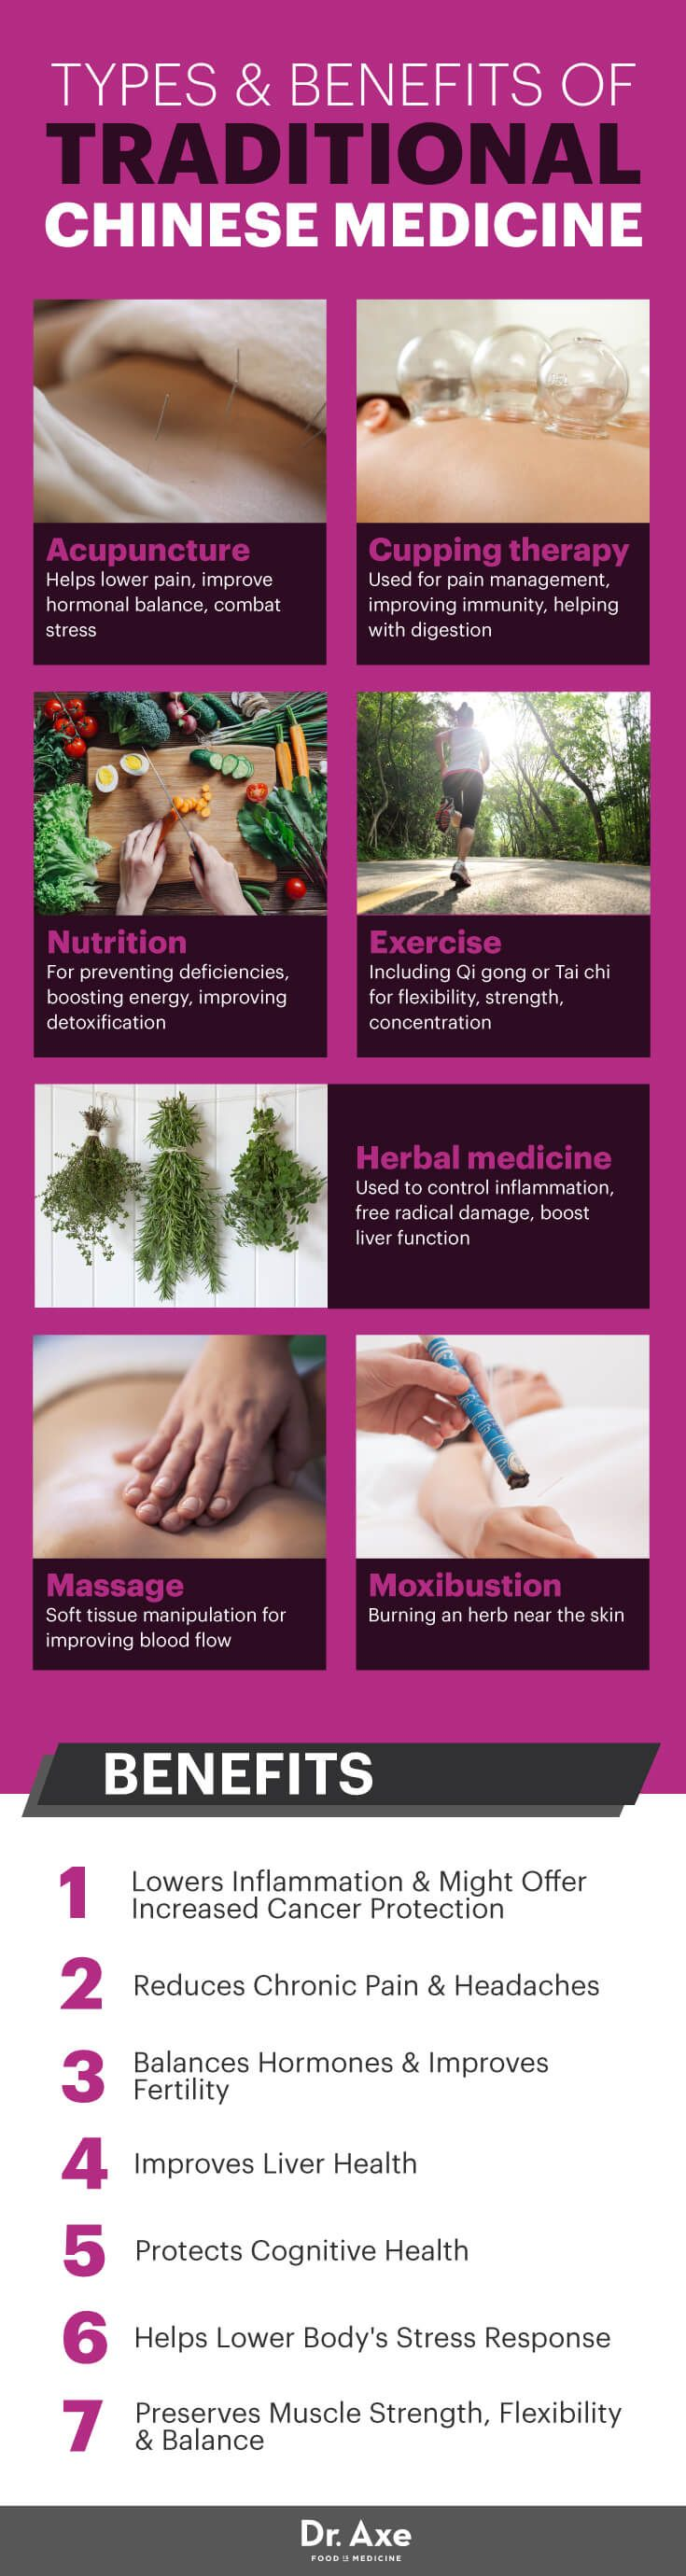 Traditional Chinese Medicine types and benefits - Dr. Axe http://www.draxe.com #health #holistic #natural